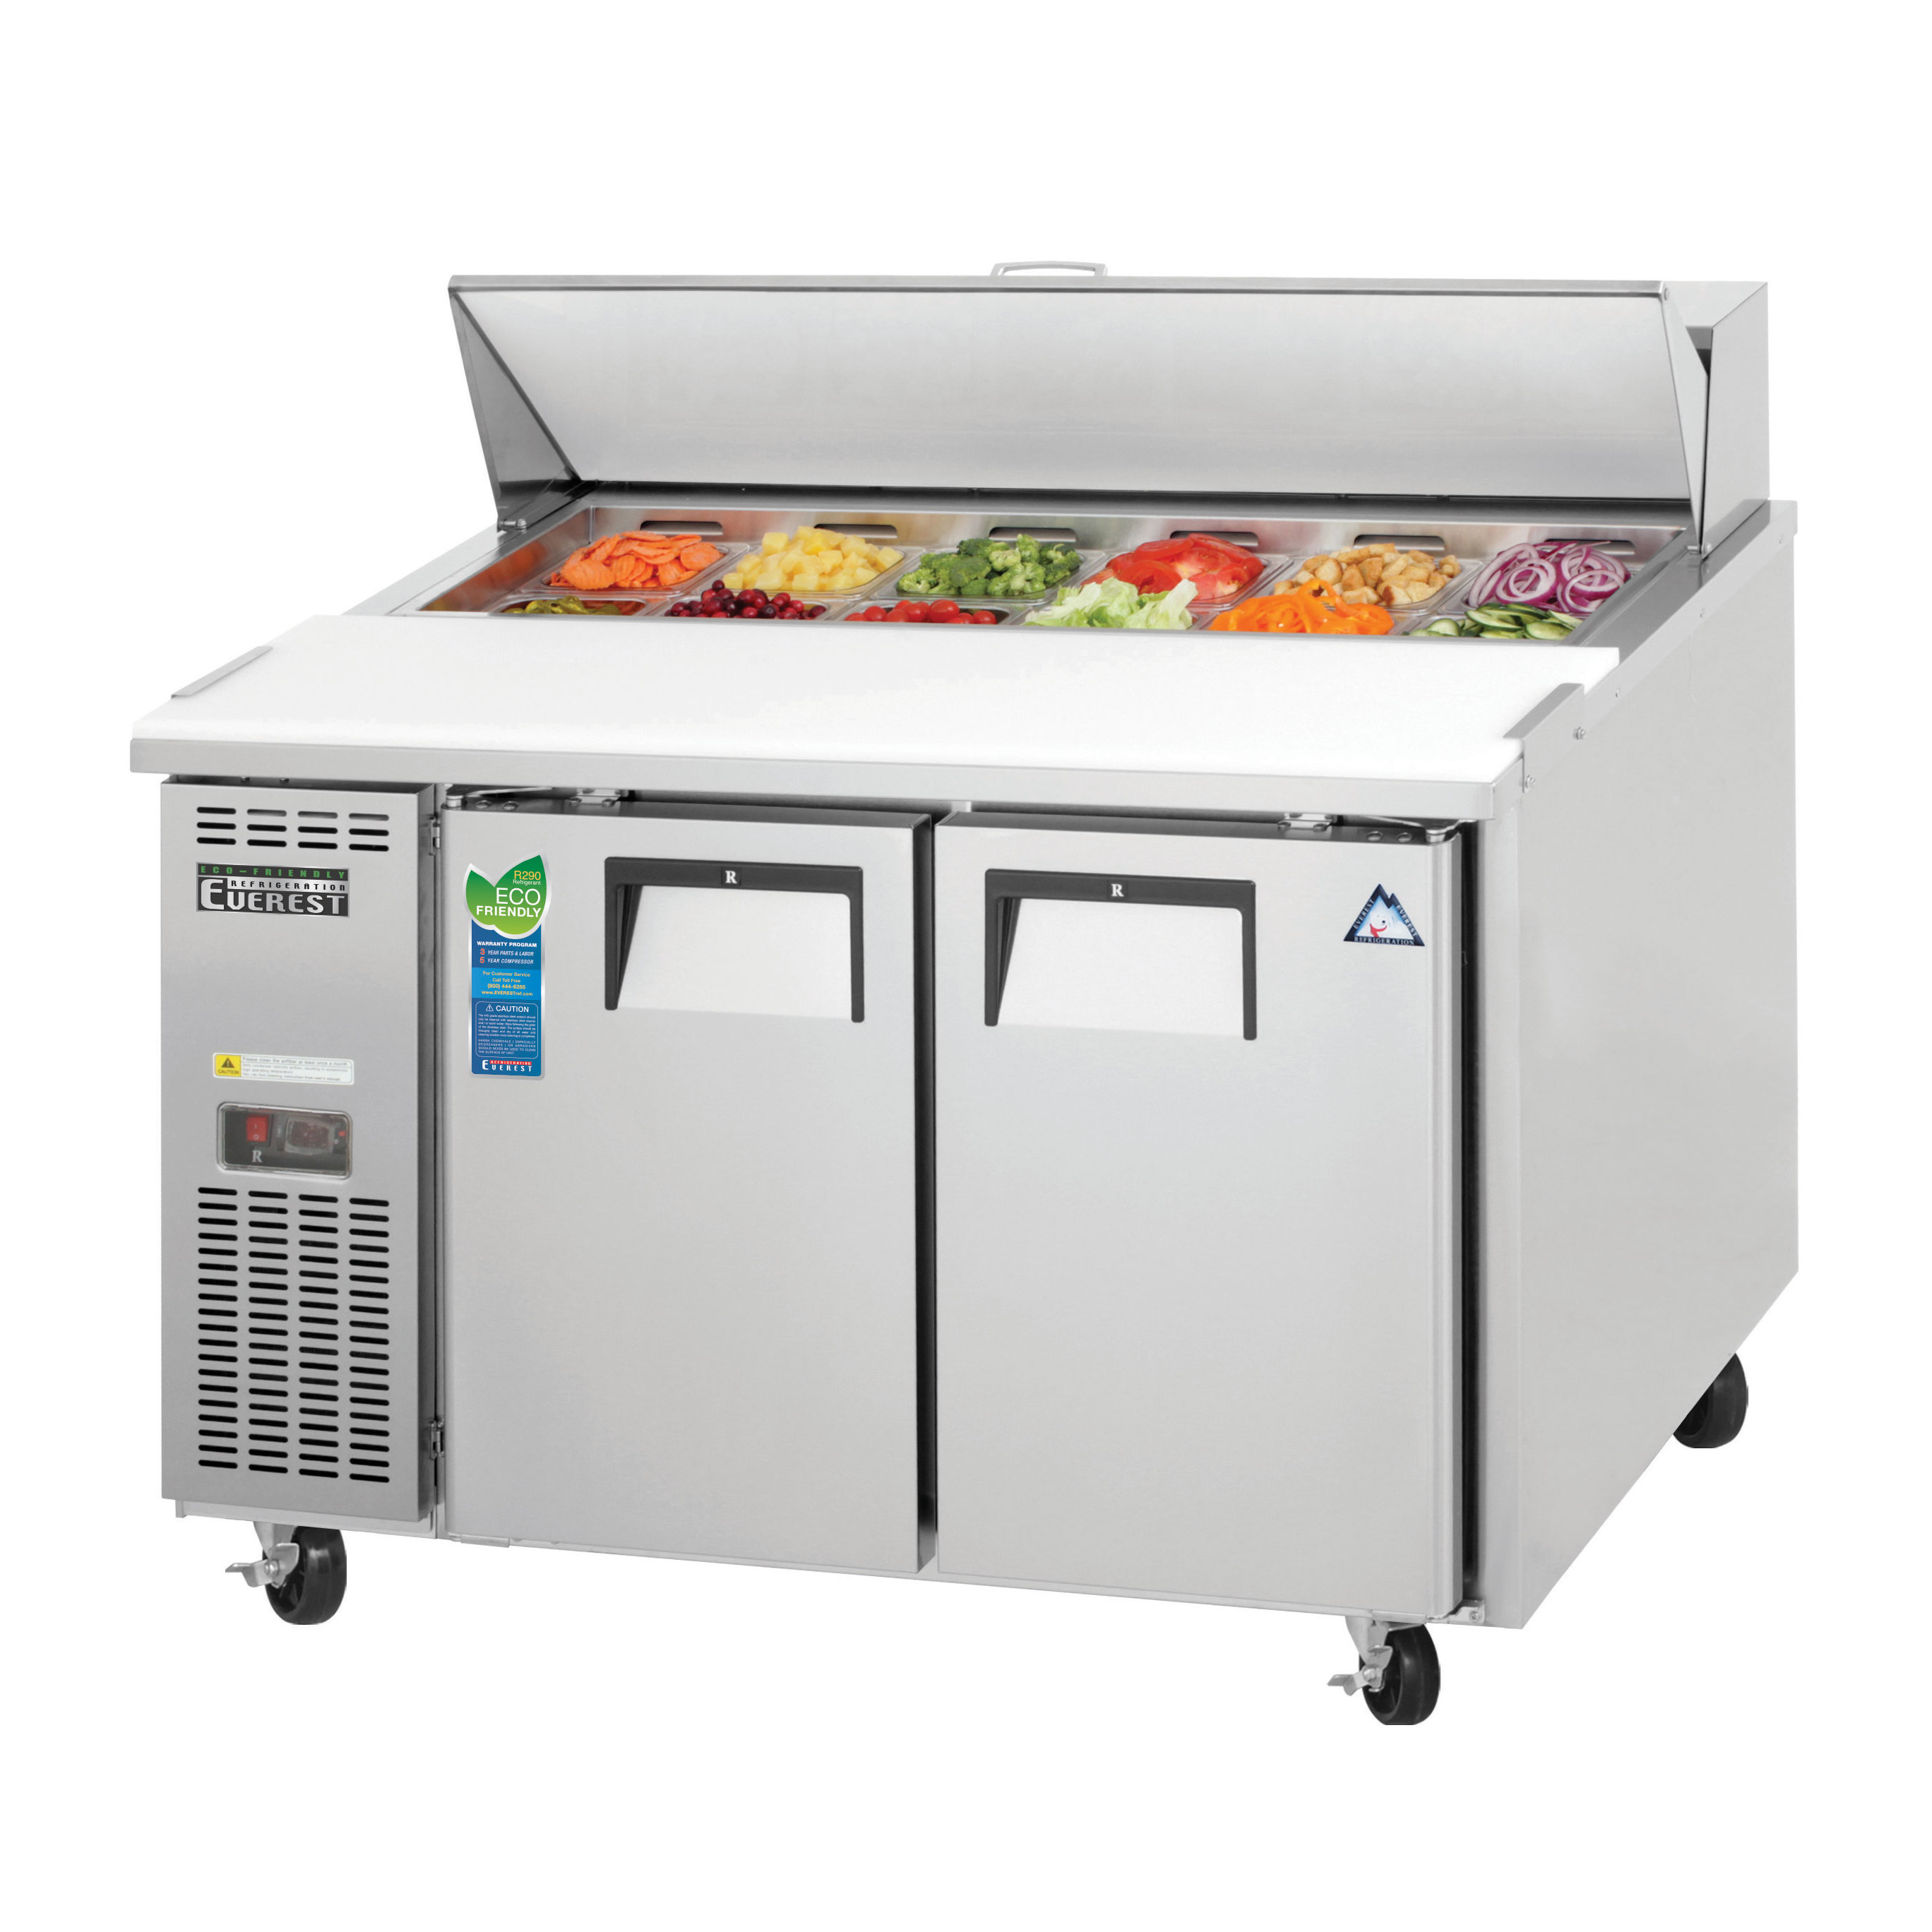 Everest Refrigeration EPR2 refrigerated counter, sandwich / salad unit